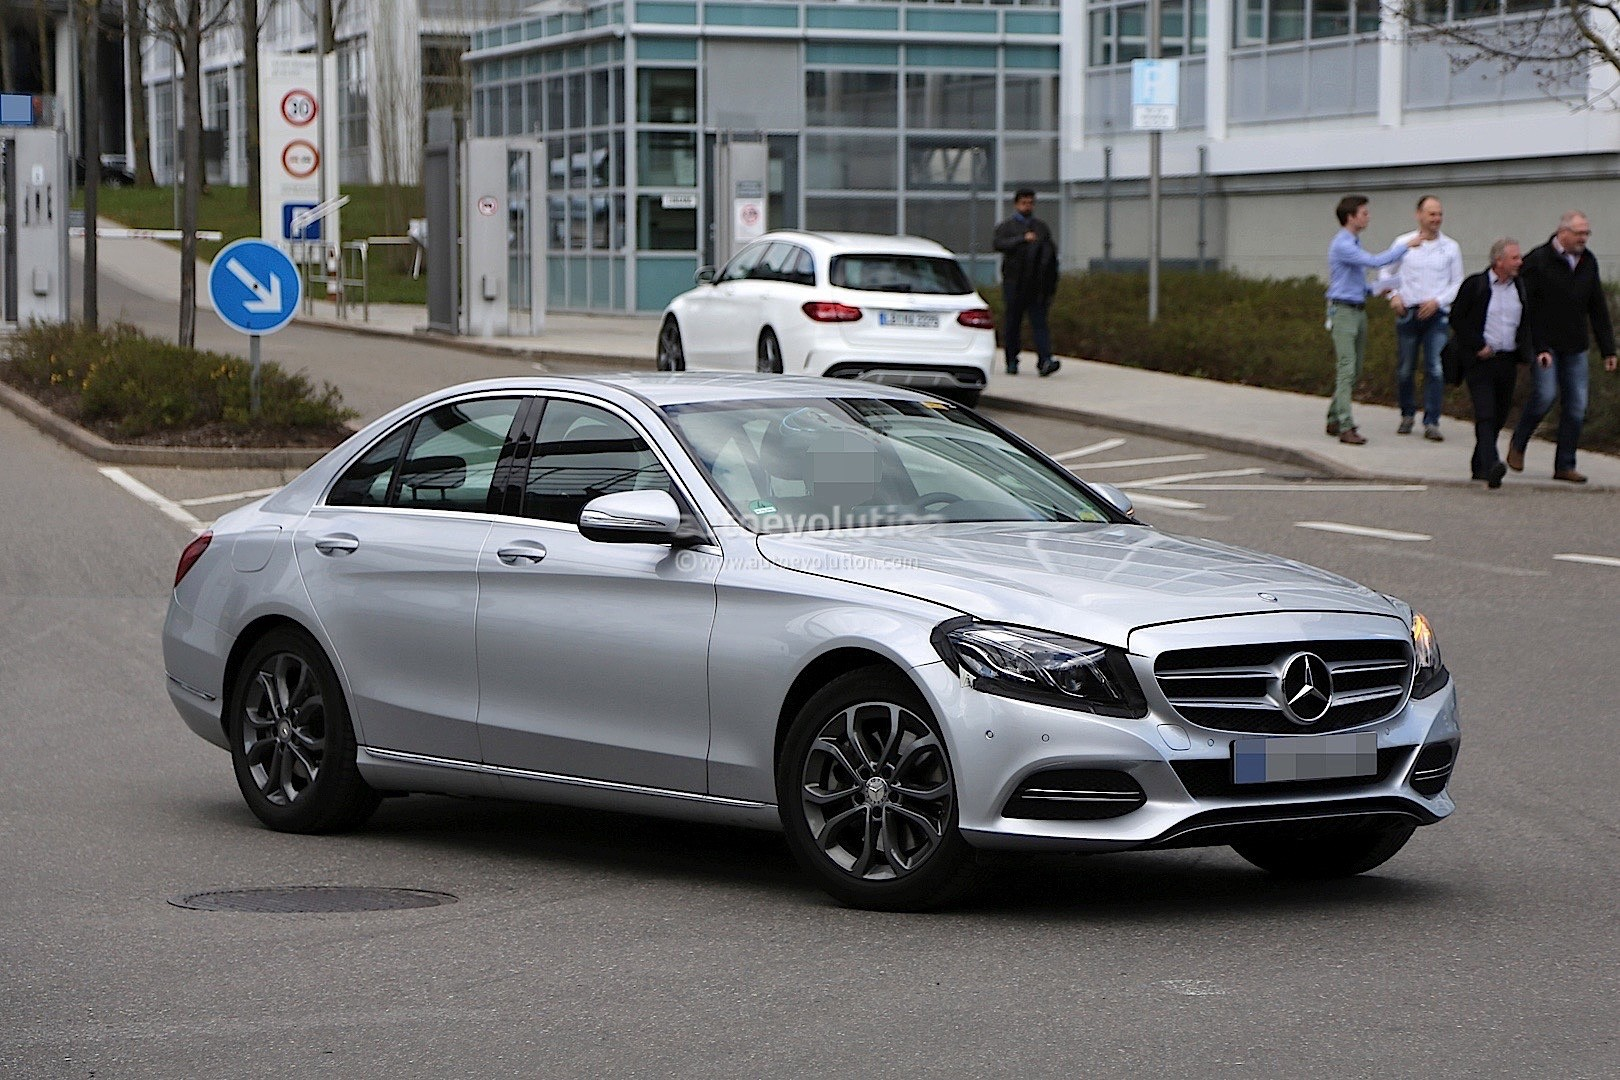 Mercedes-benz c350 photo - 5